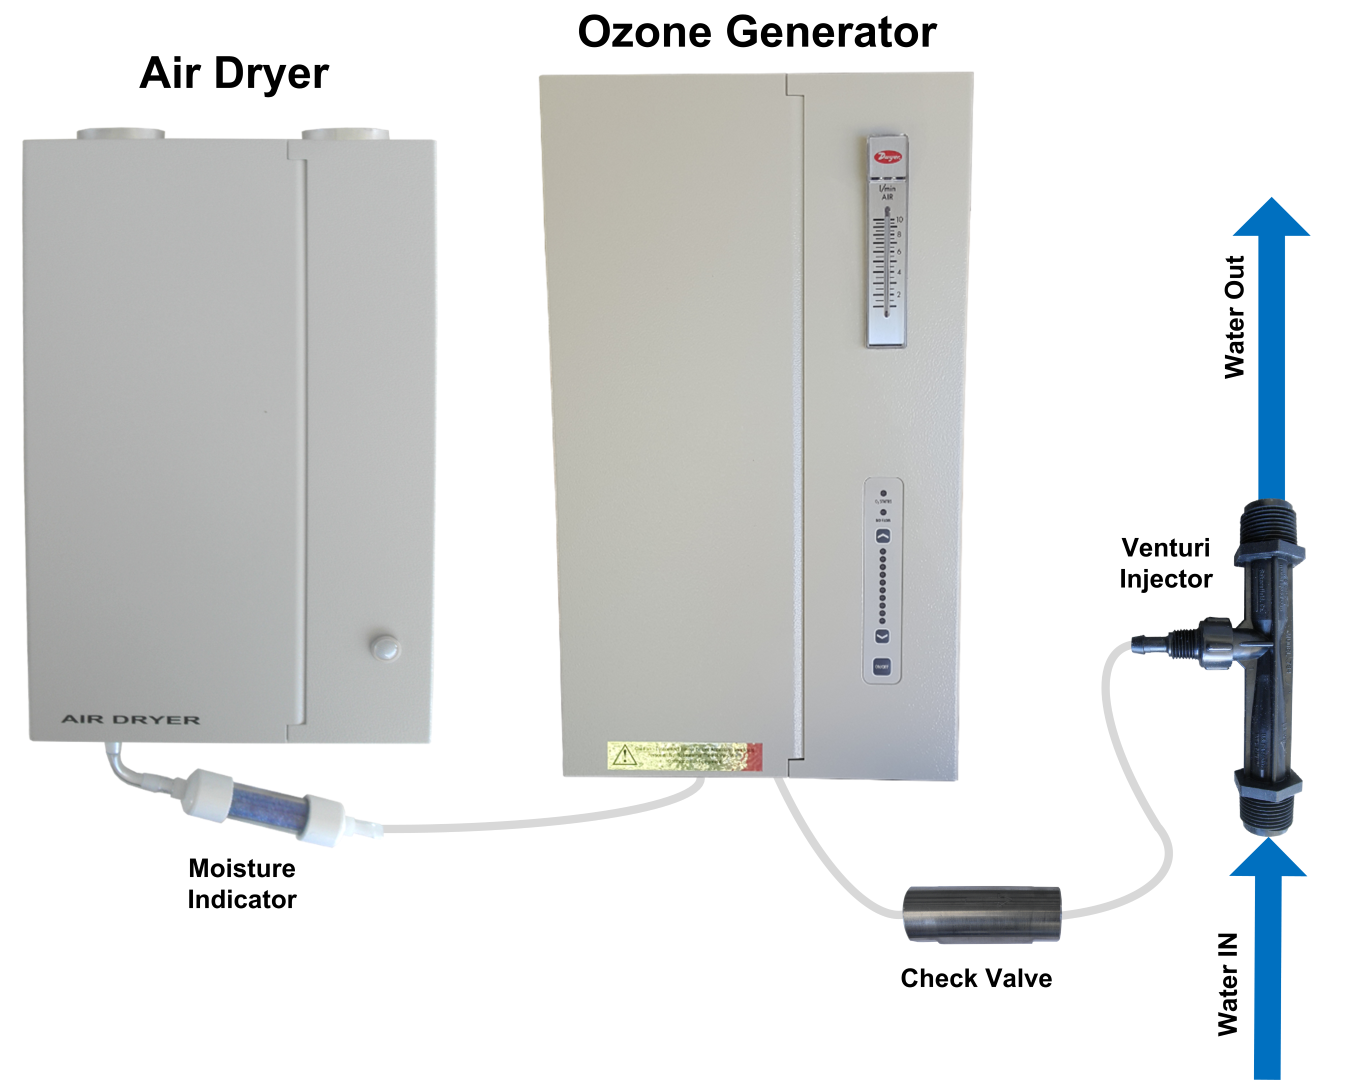 Well water treatment system with ozone